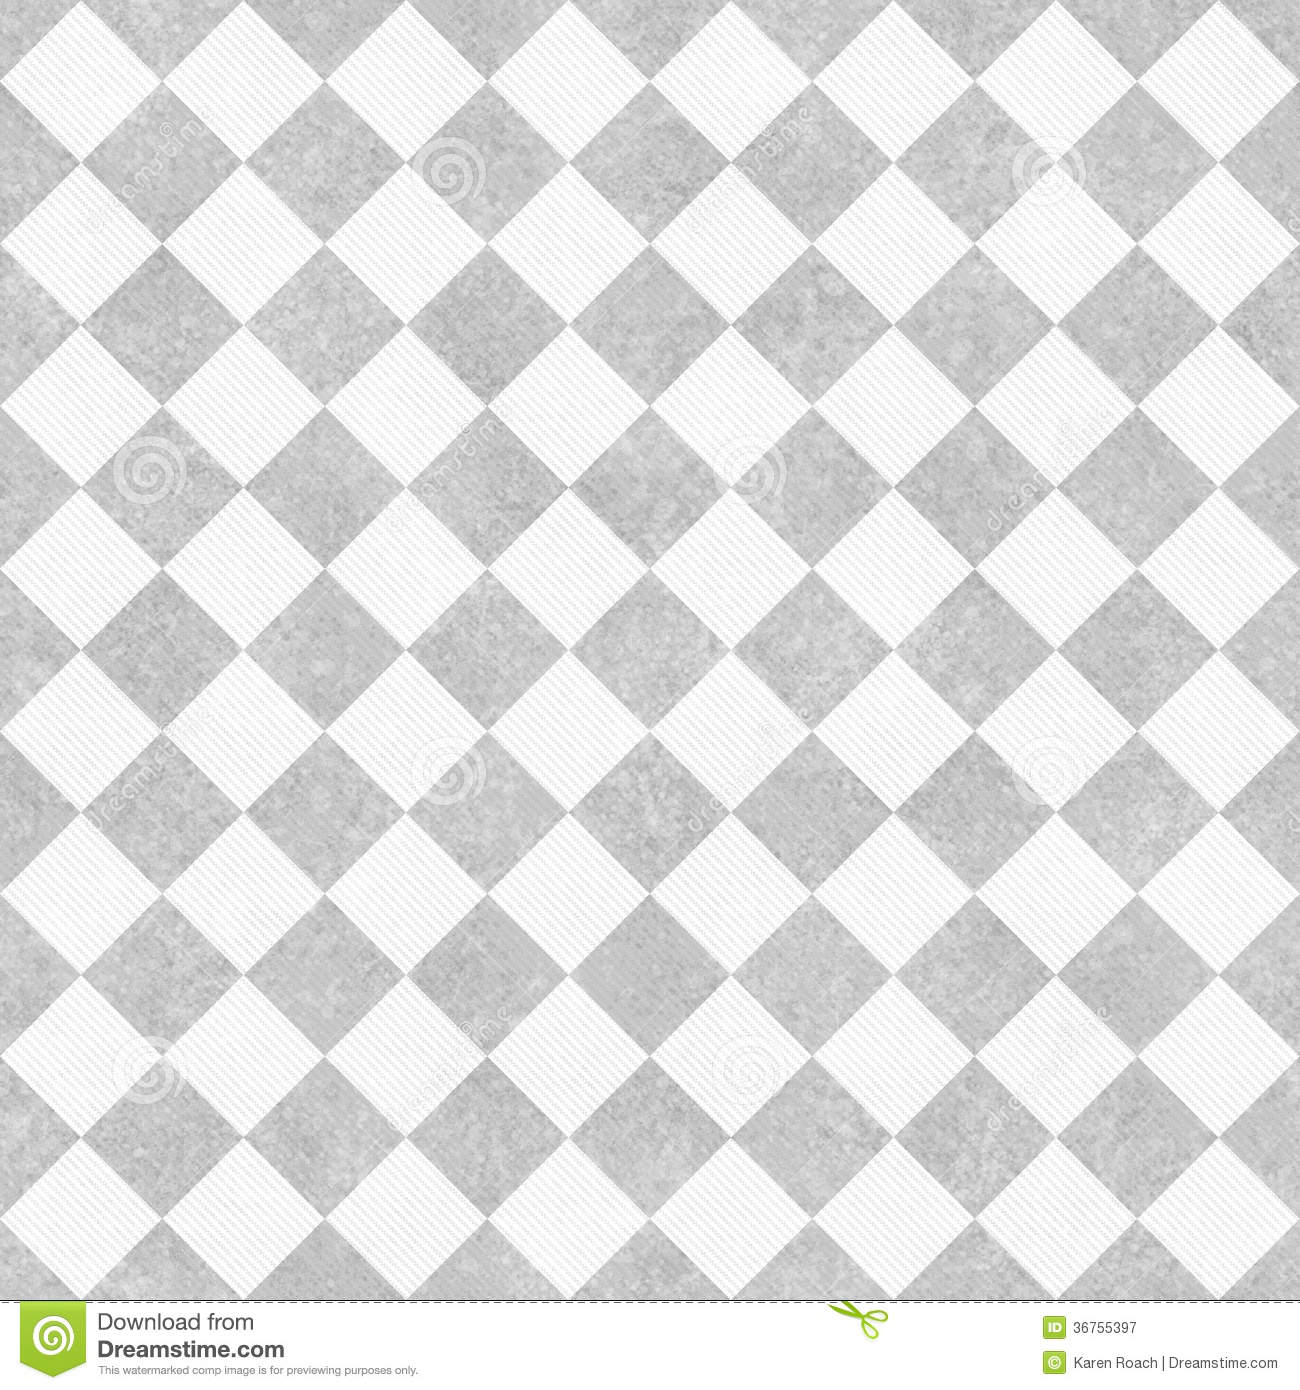 Pale Gray And White Diagonal Checkers On Textured Fabric